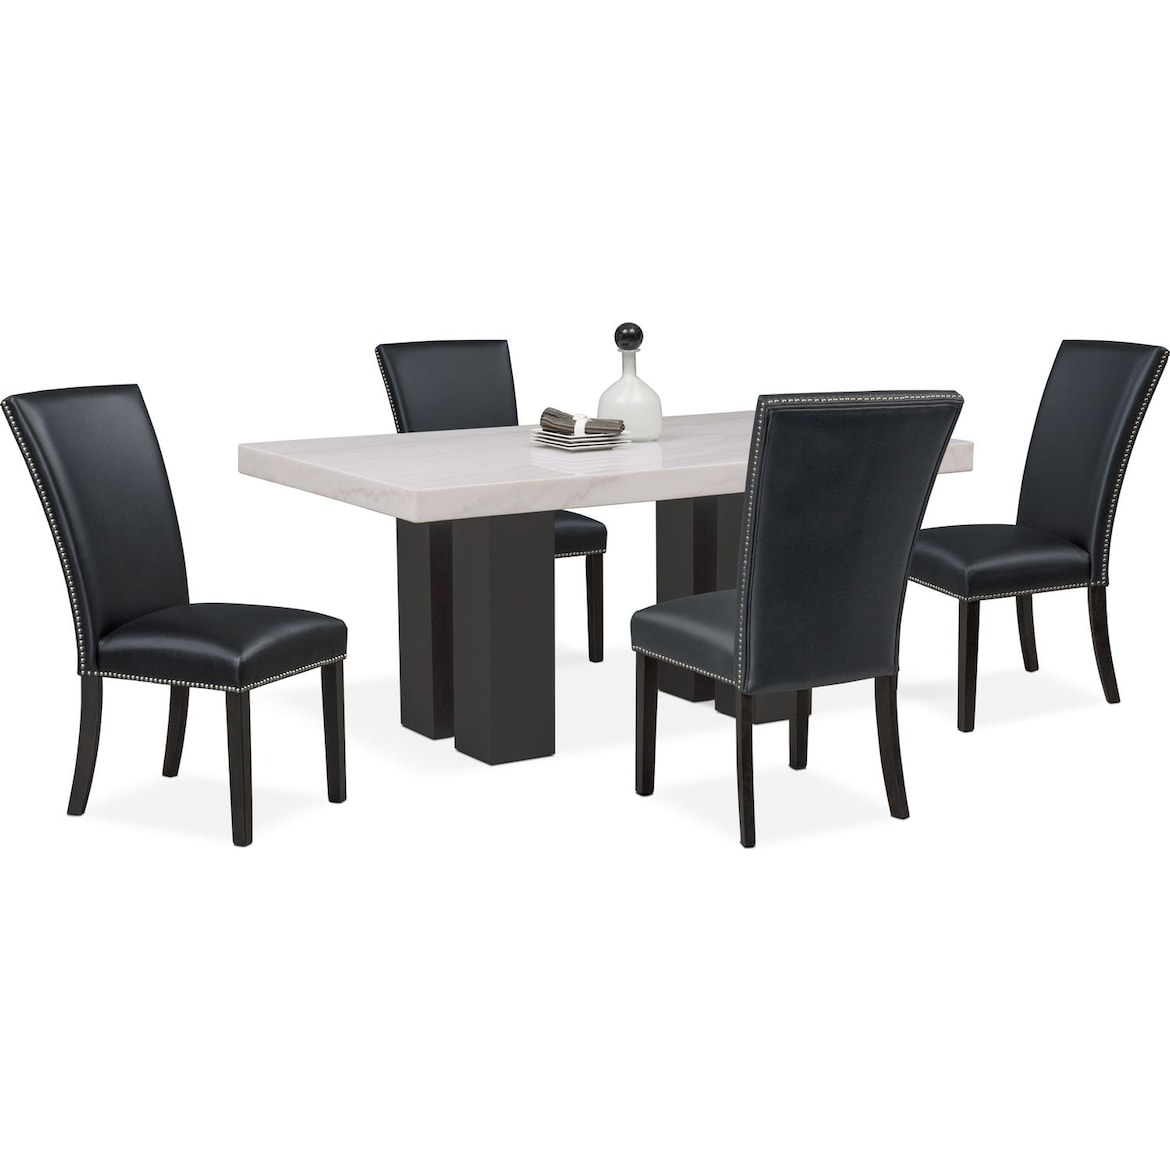 906832d779181f Artemis Dining Table and 4 Upholstered Side Chairs | Value City ...